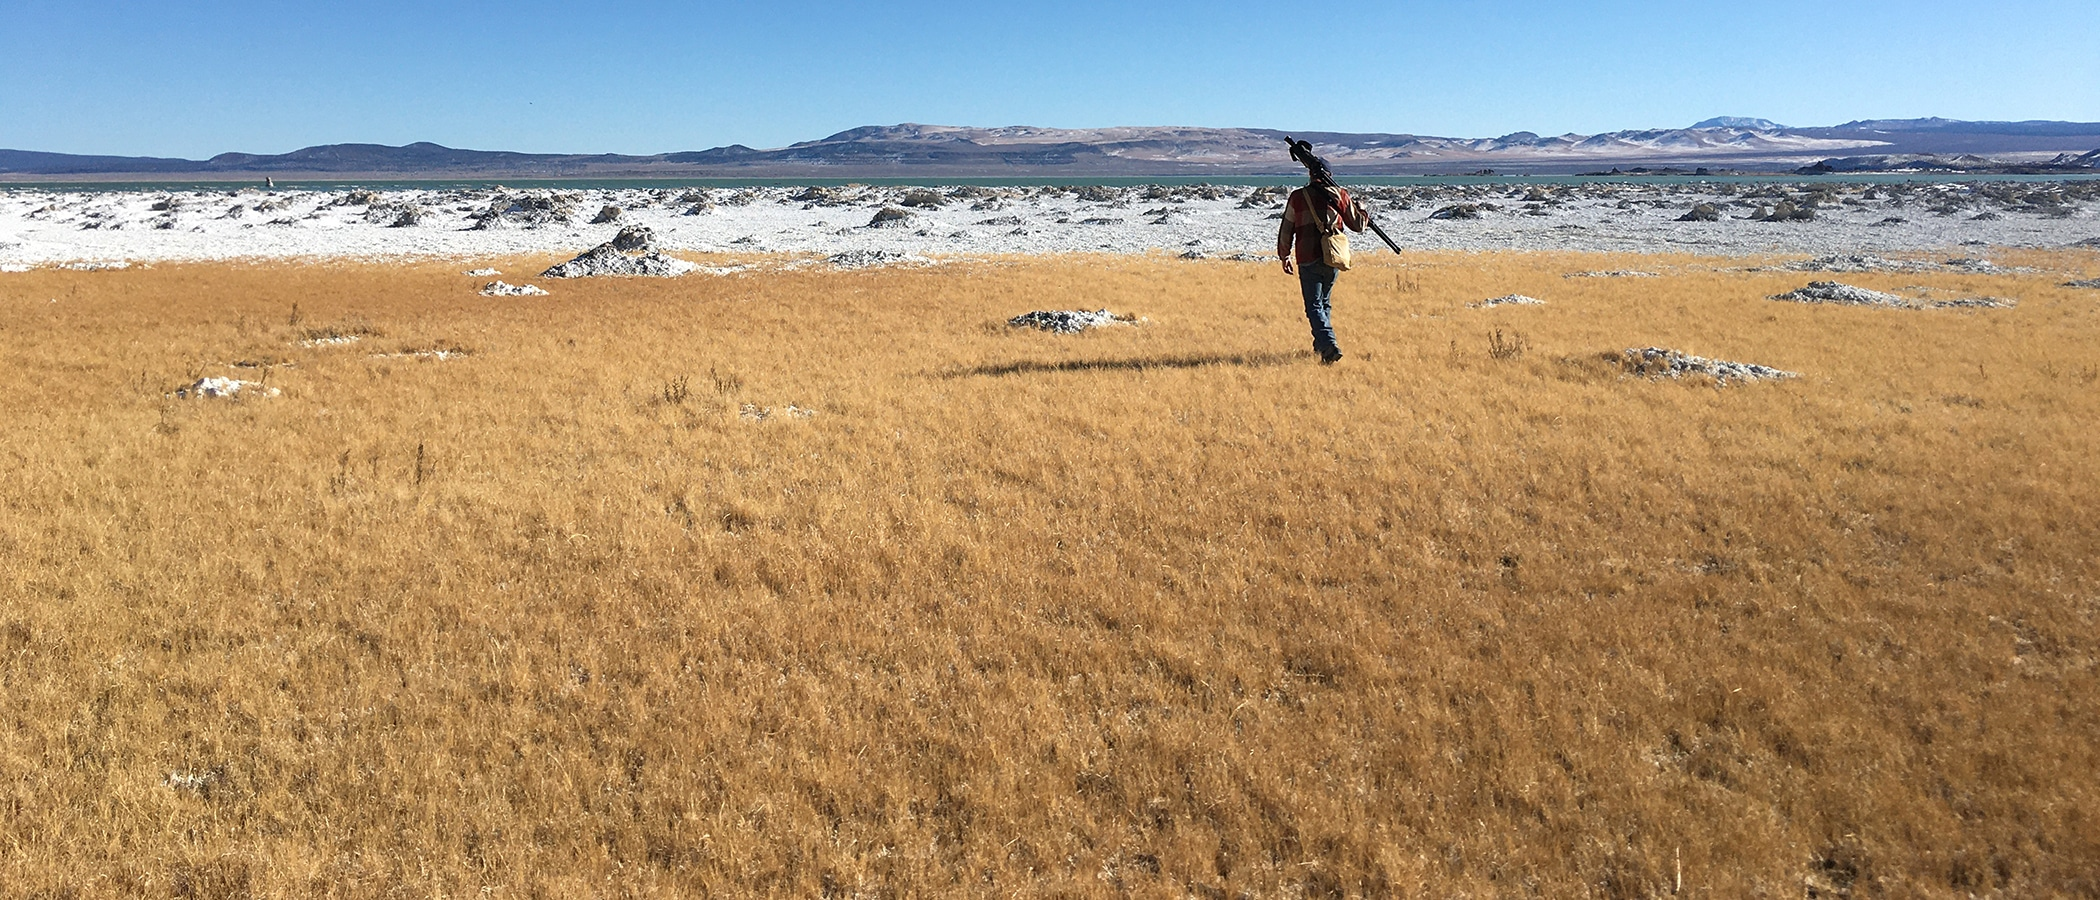 One man walks with a tripod across his back through a golden field of grass towards snow covered rocks on the shore of Mono Lake.